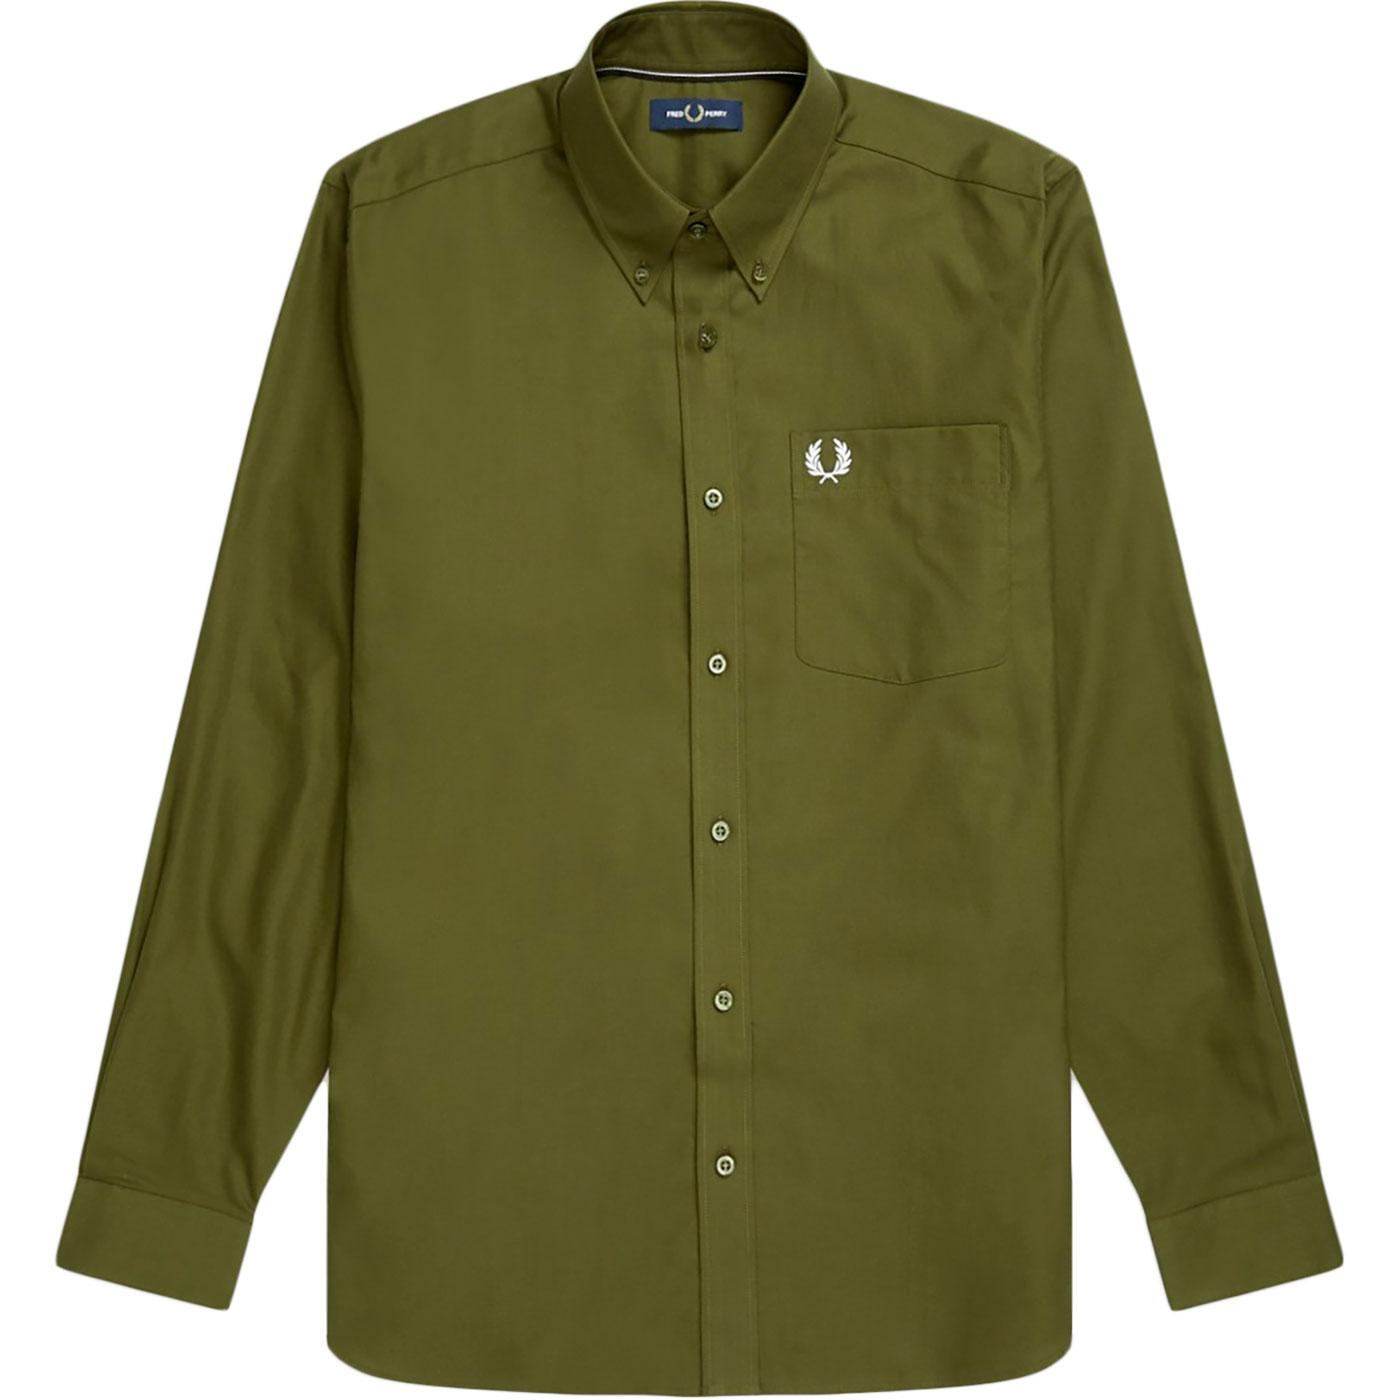 FRED PERRY Retro Mod Button Down Oxford Shirt DT